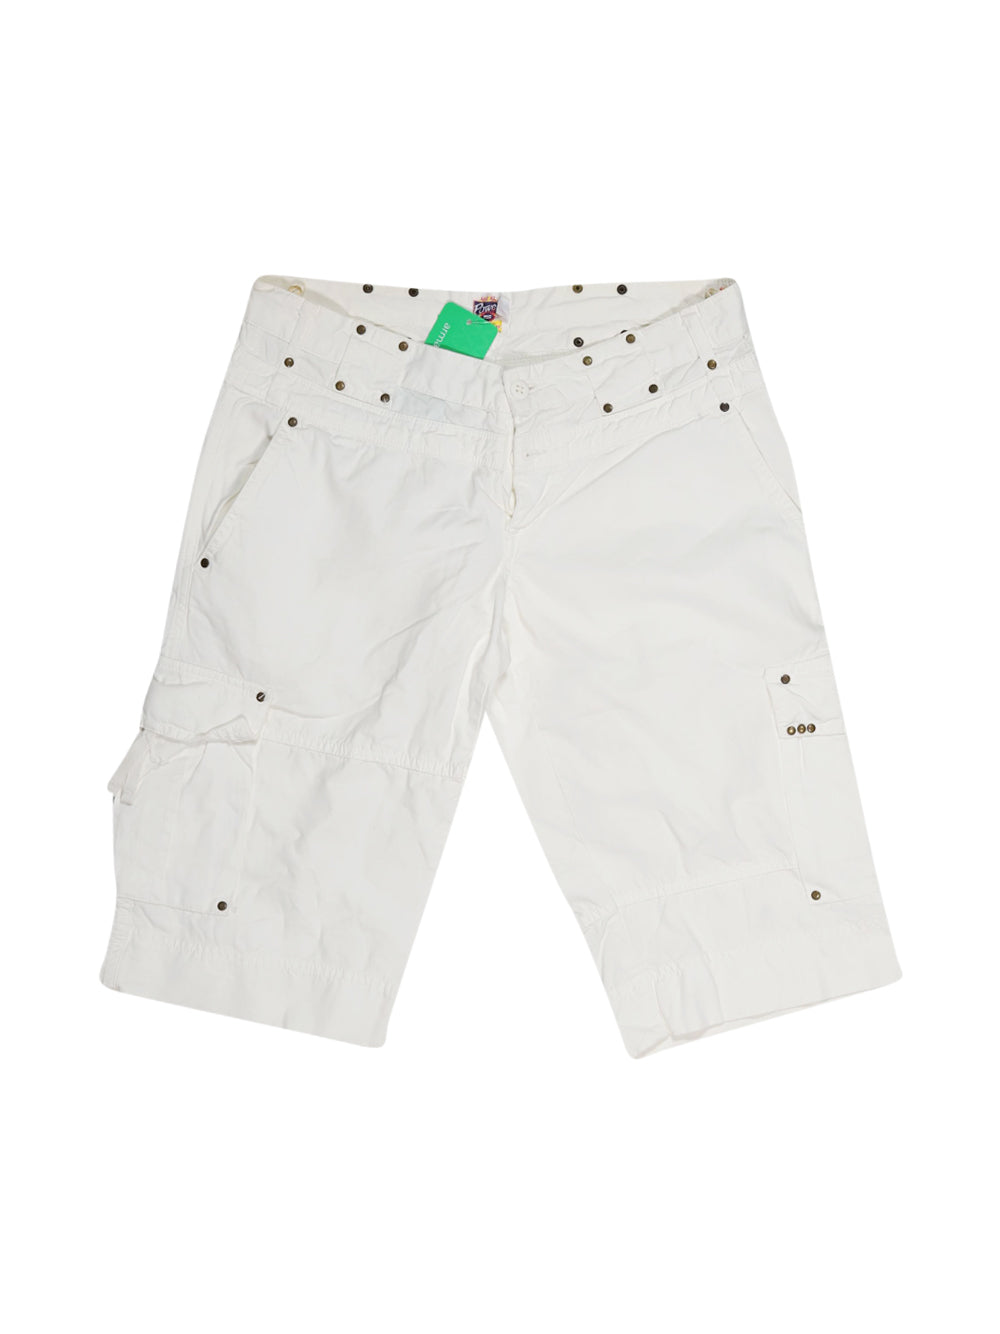 Front photo of Preloved powell White Woman's shorts - size 14/XL